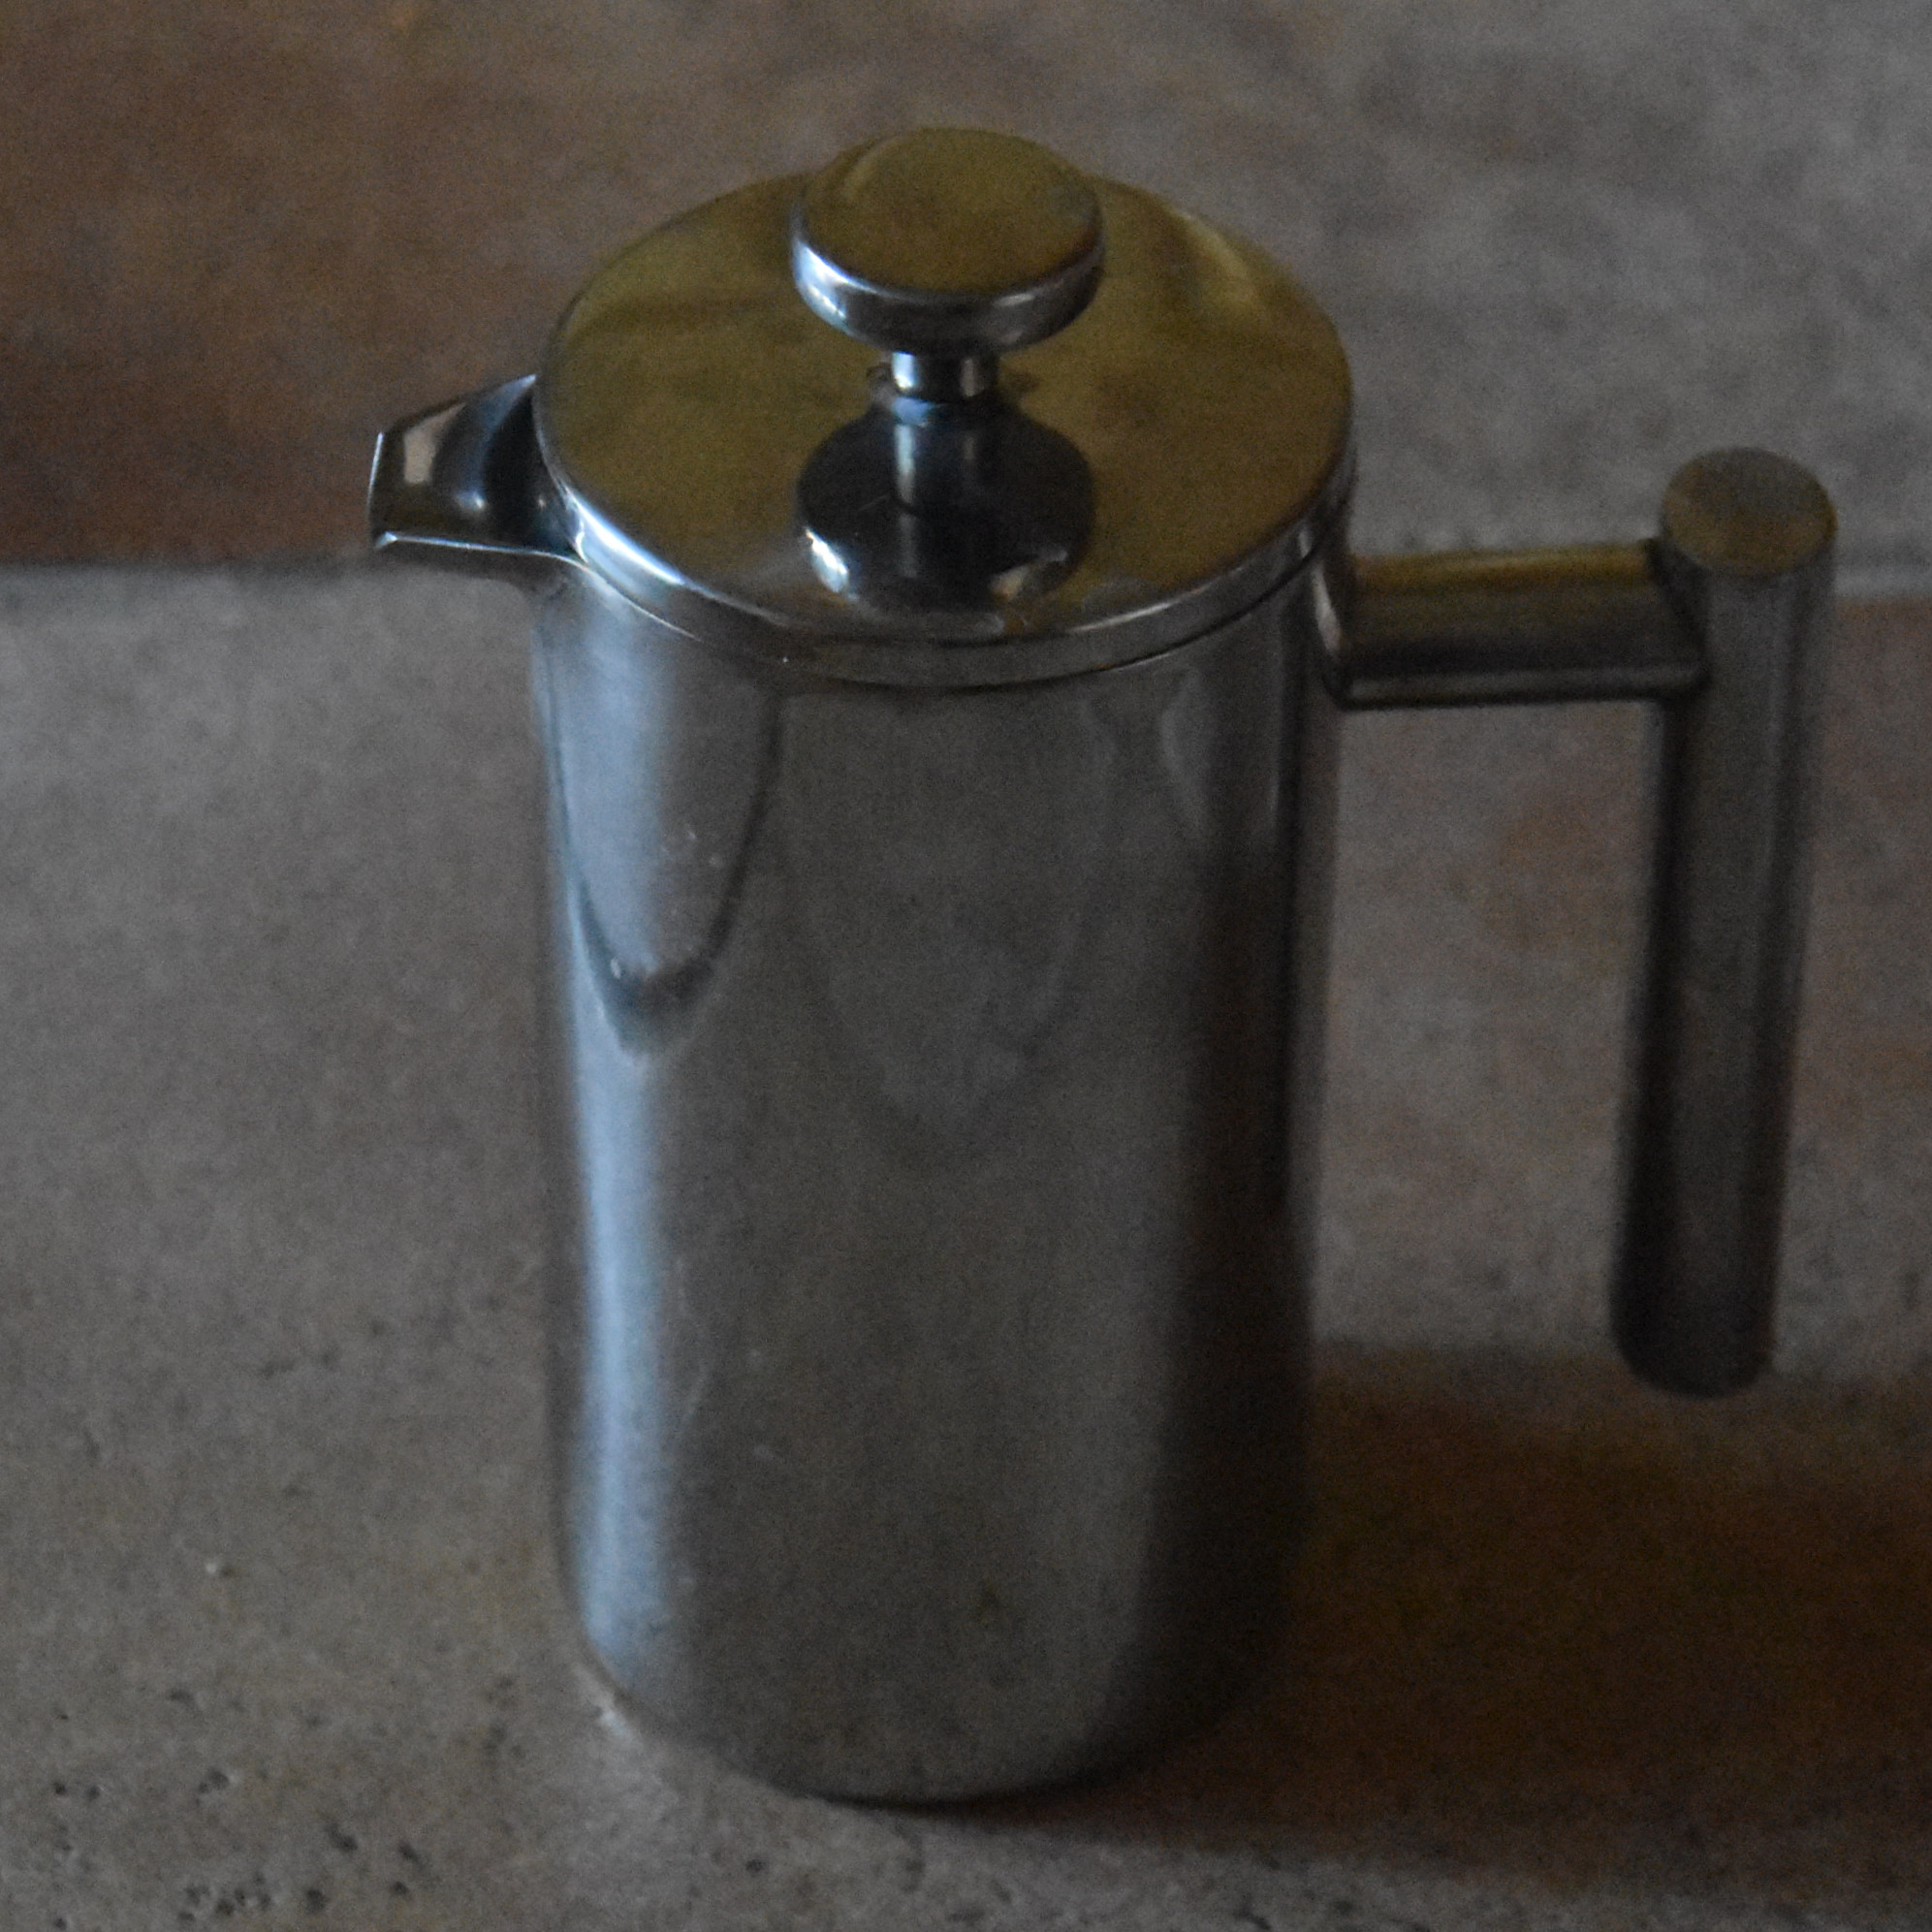 My shiny metal cafetiere (I got tired of breaking the glass ones!).